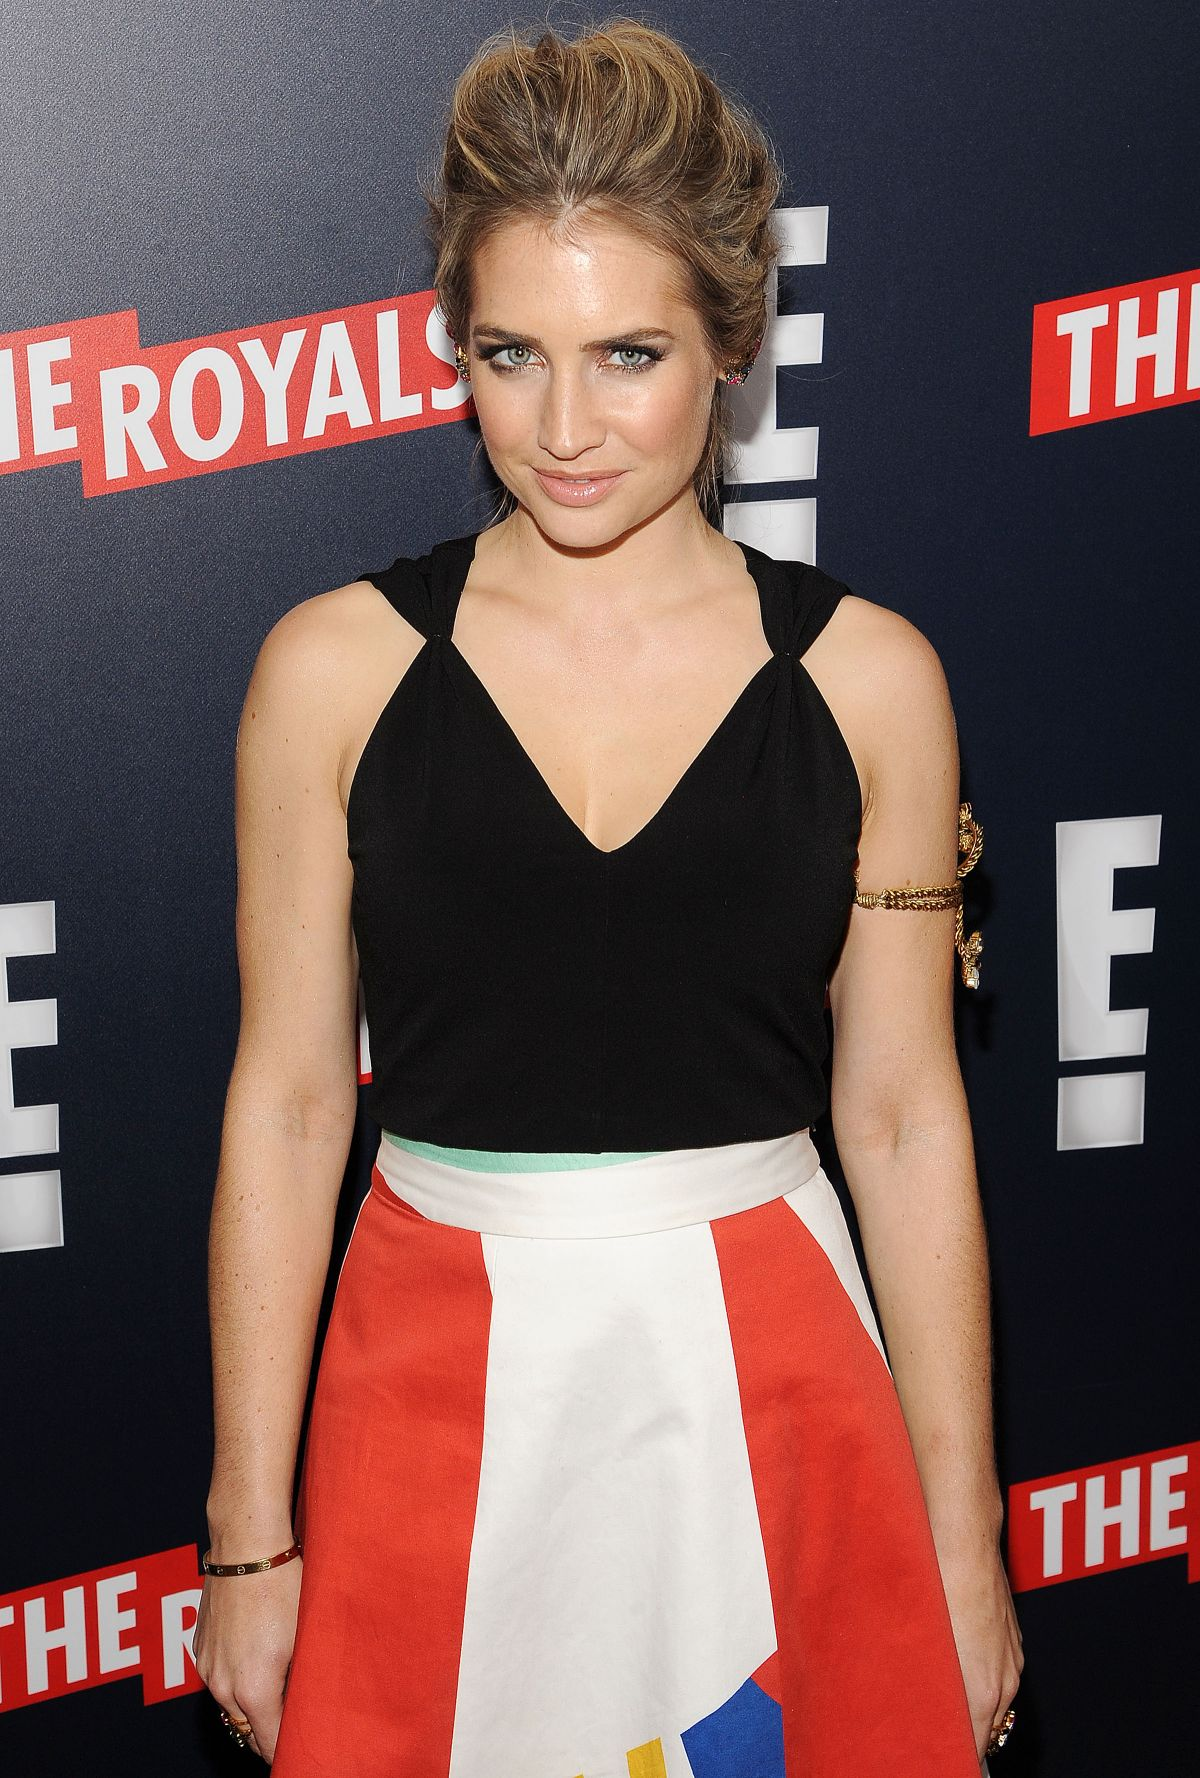 SOPHIE COLQUHOUN at The Royals Premiere in New York